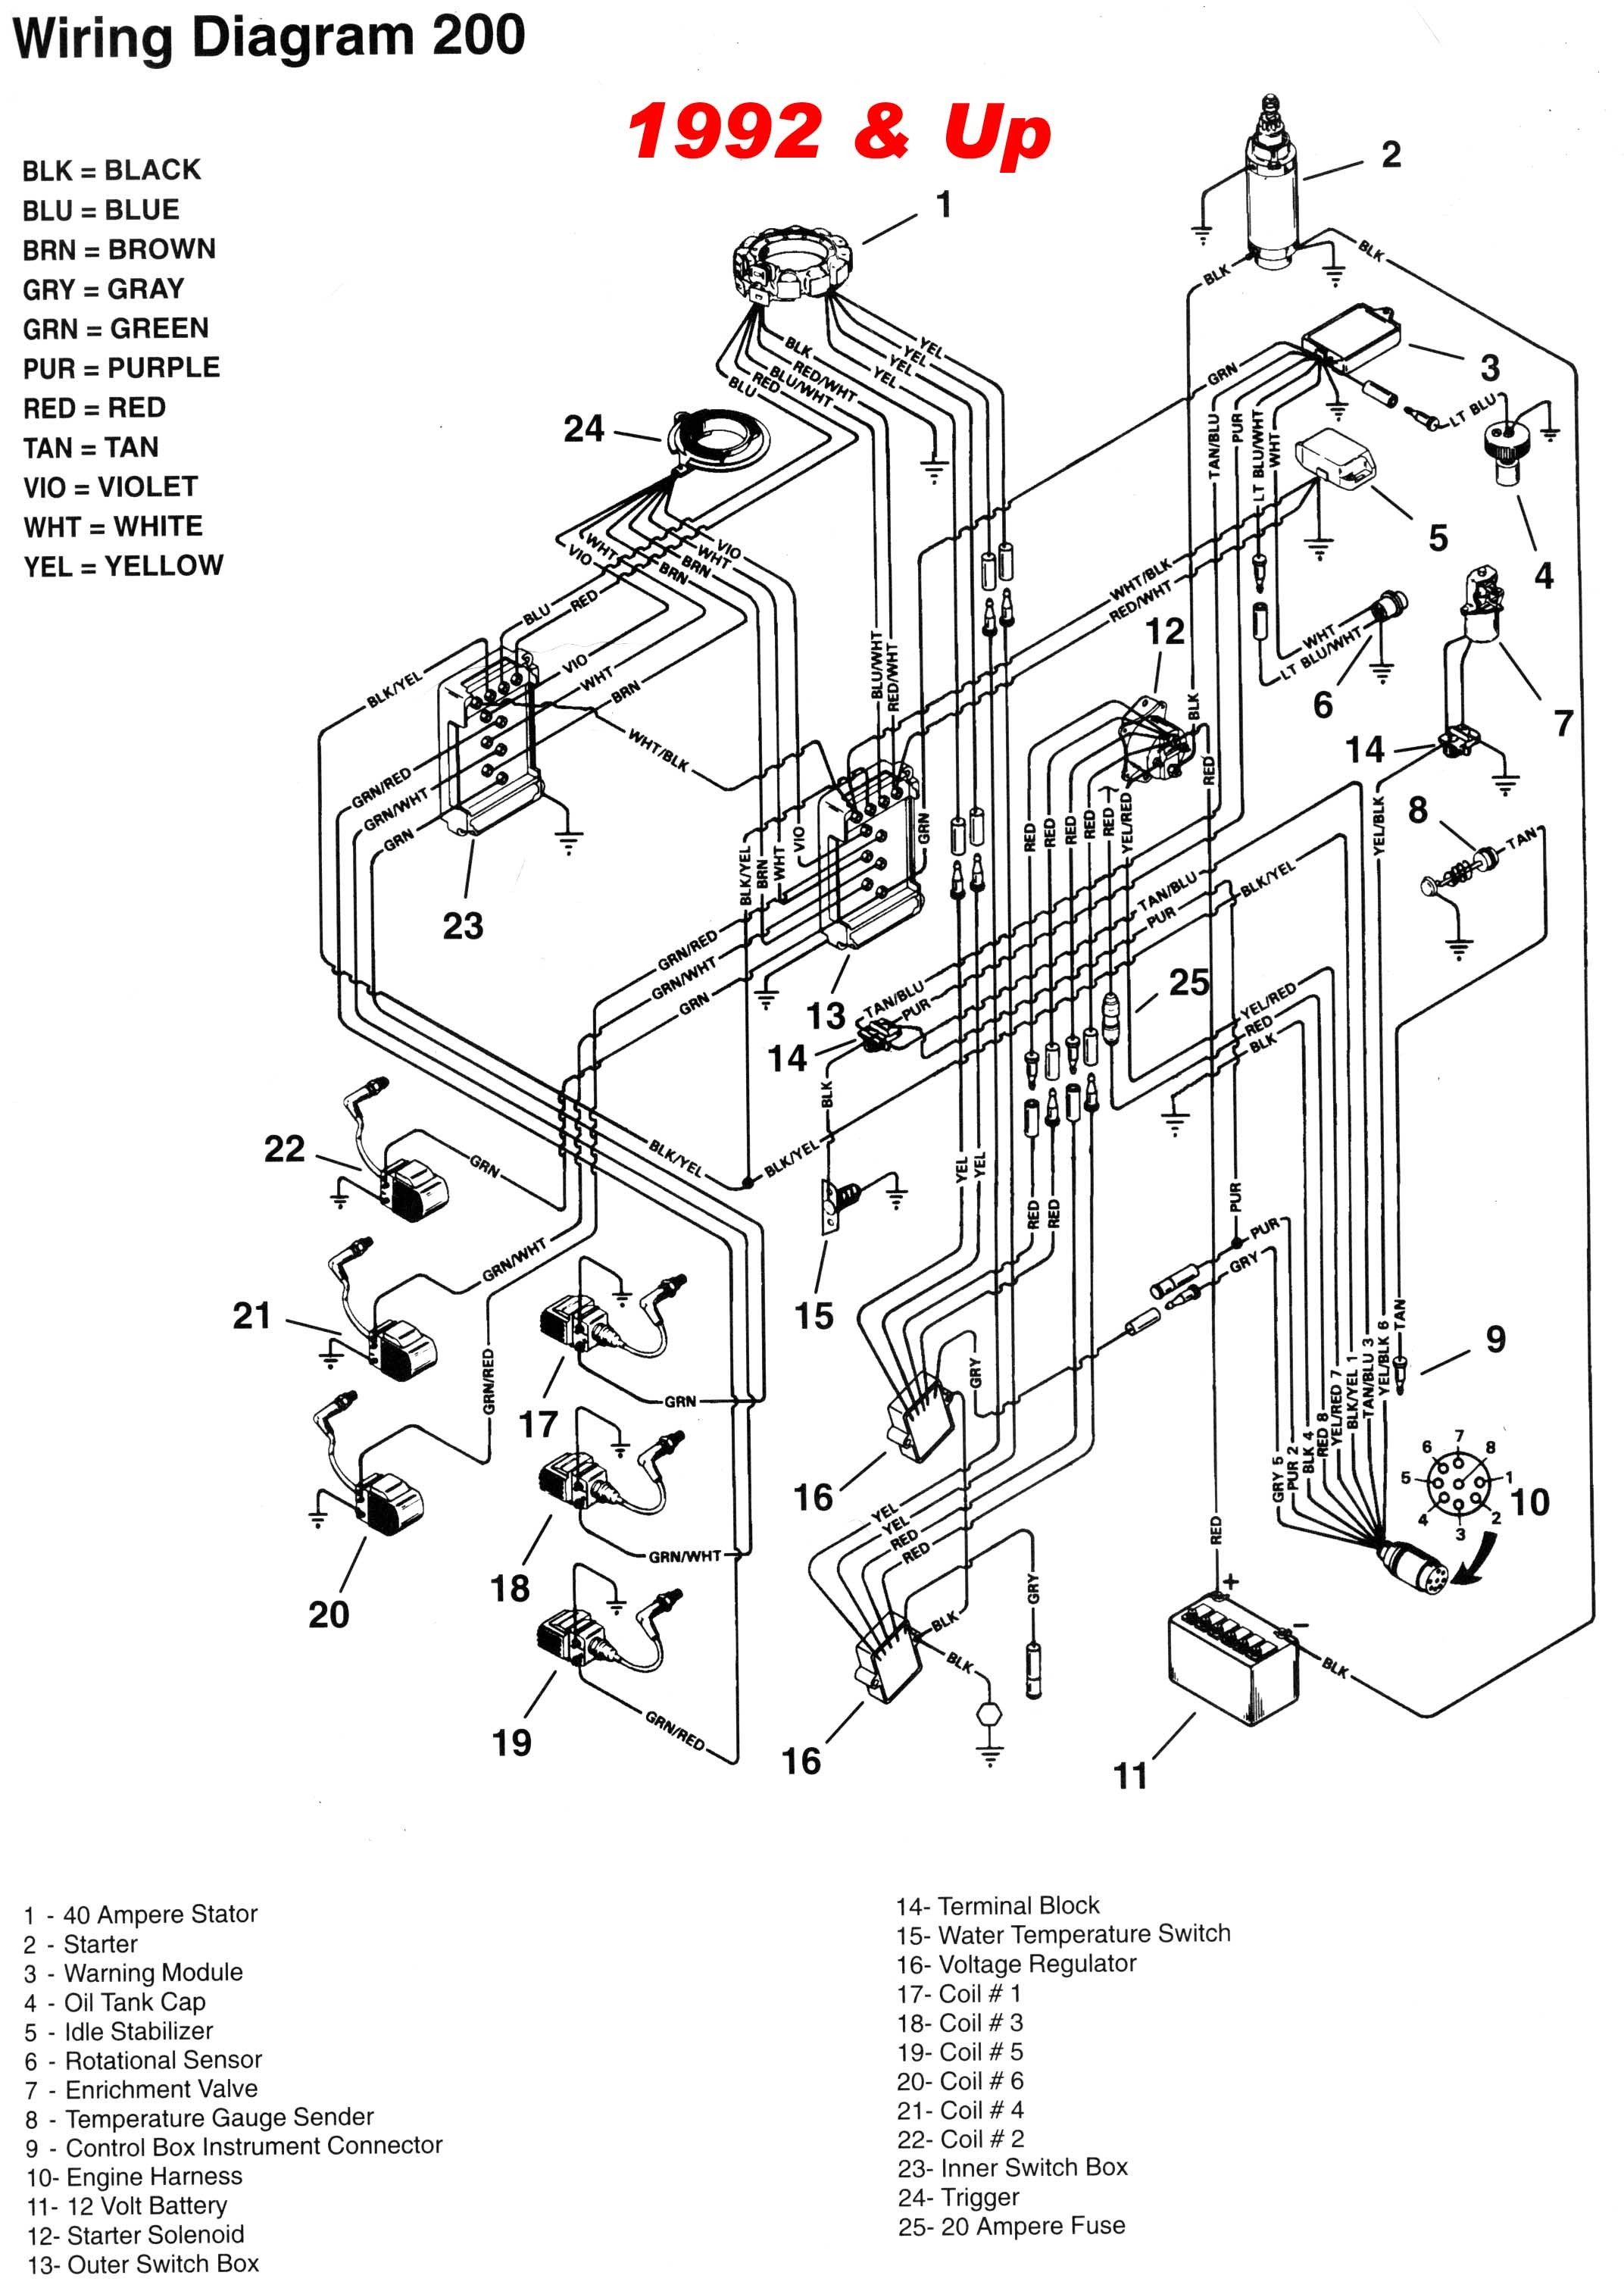 Mariner Outboard Wiring Diagram Wiring Diagram Mercury Outboard 2 5 And 3  0l V6 And Gearcase Faq Mariner Outboard Motor Wiring Diagram Mariner  Outboard